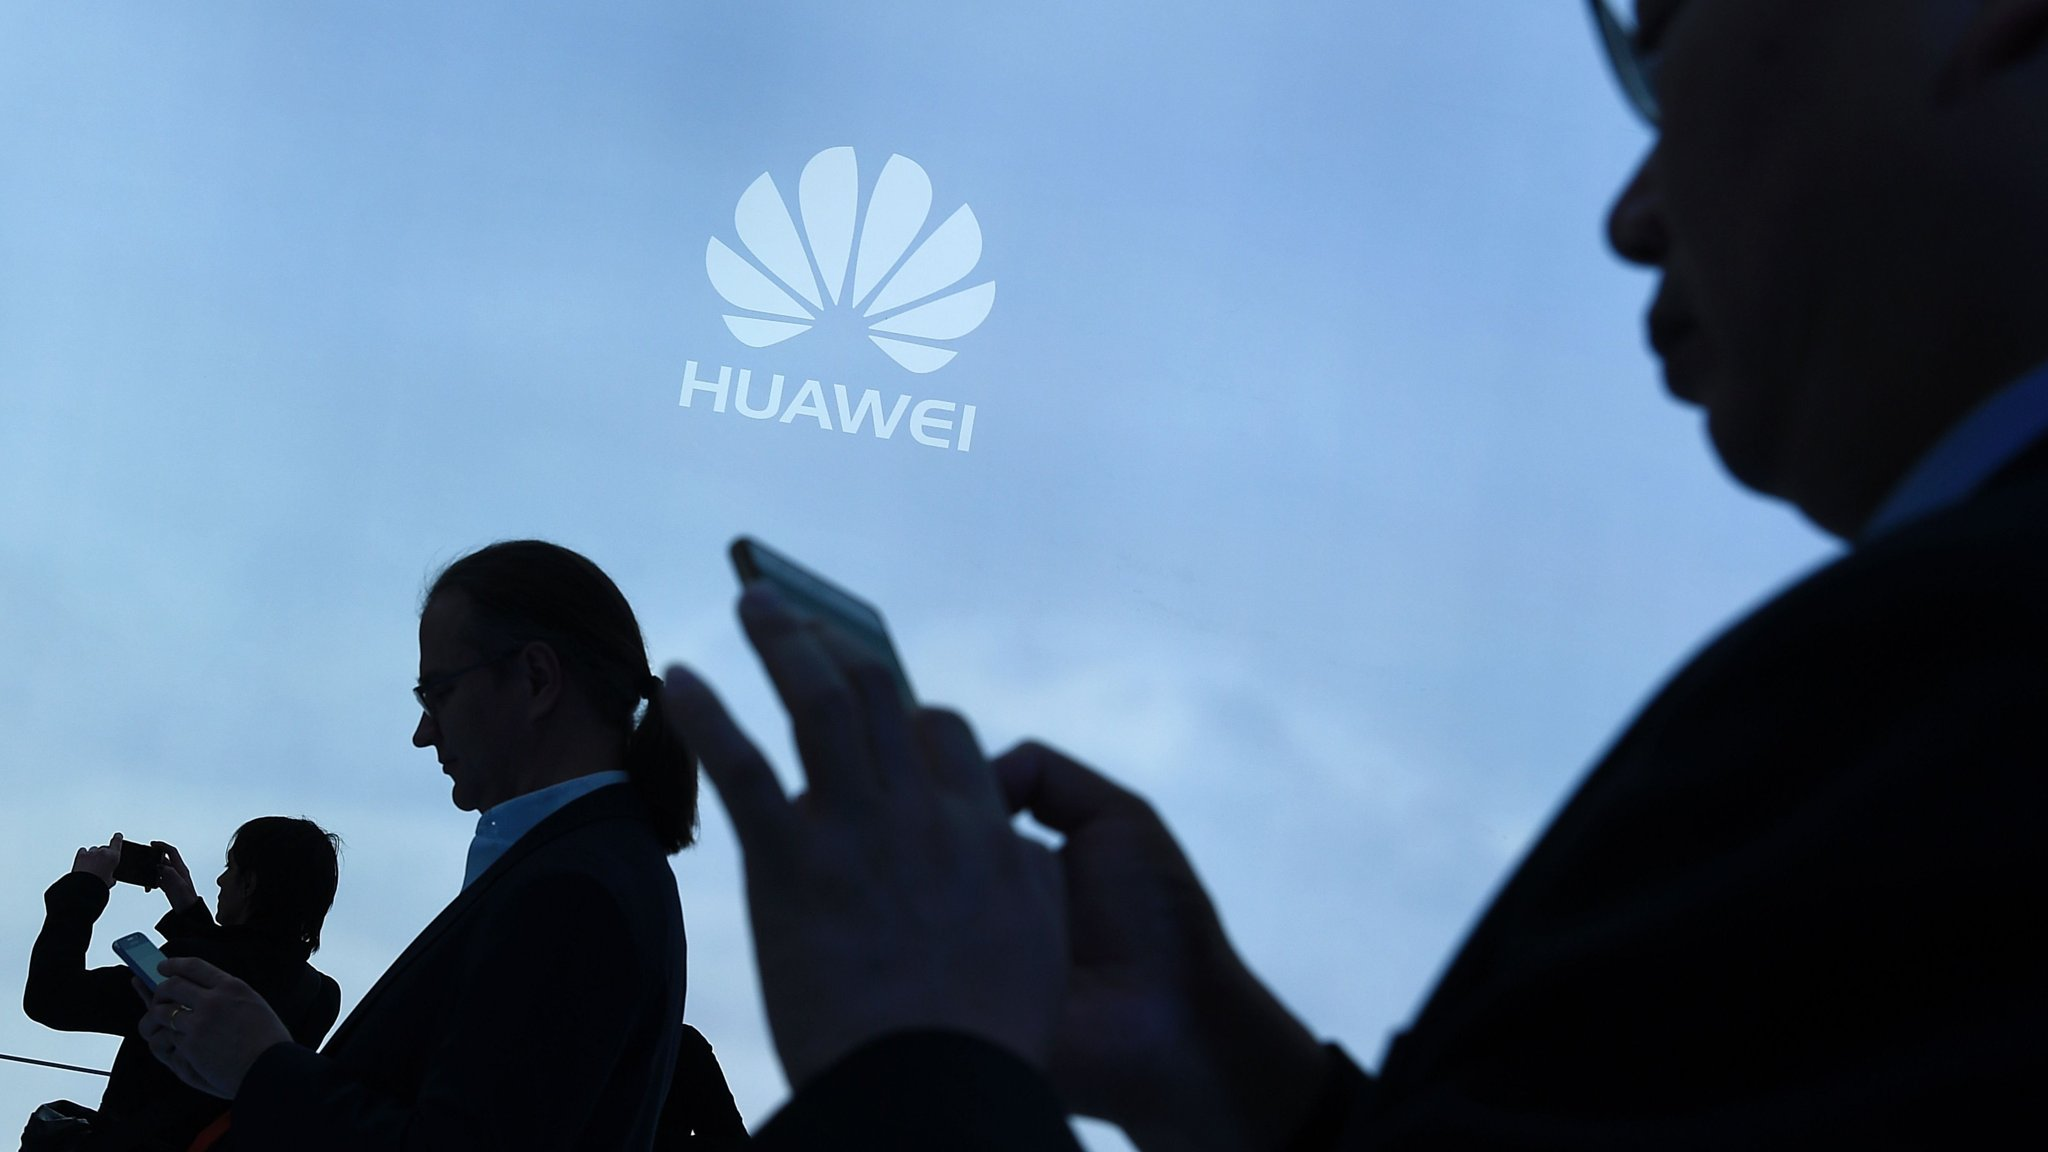 Congress is wrong to question Huawei's academic partnerships